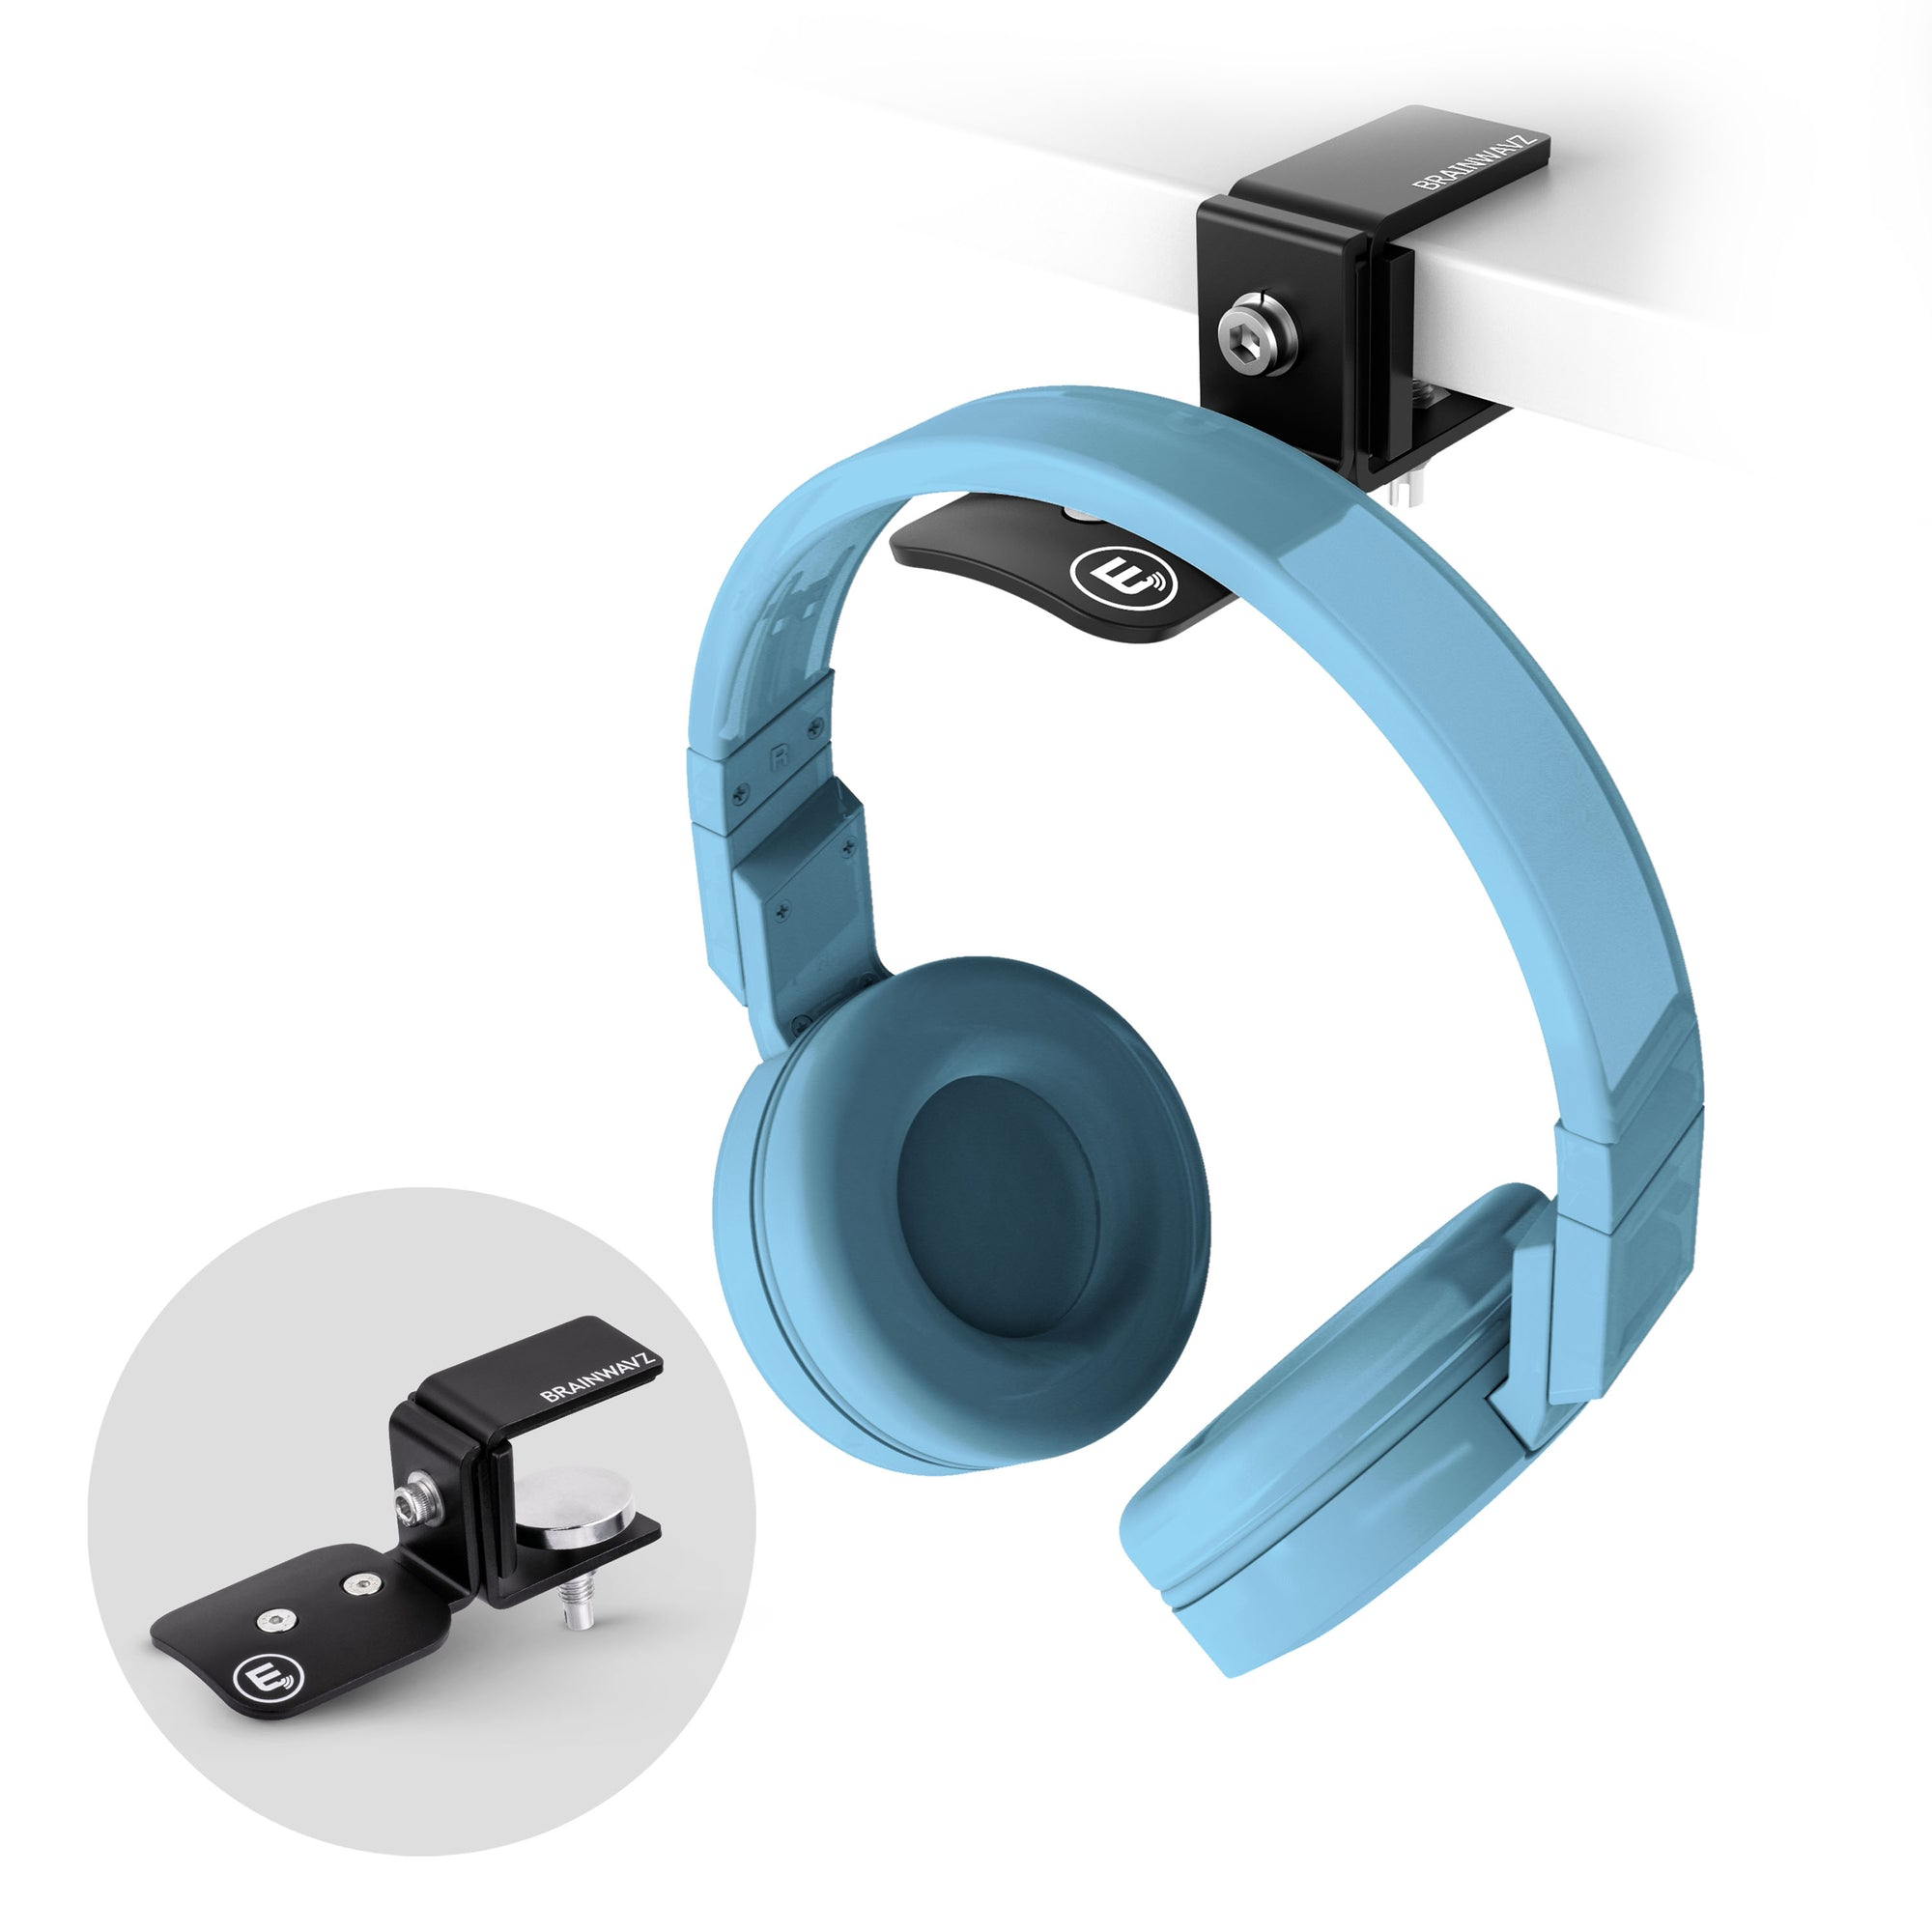 Hengja - All Metal Adjustable Headphone Hanger Stand